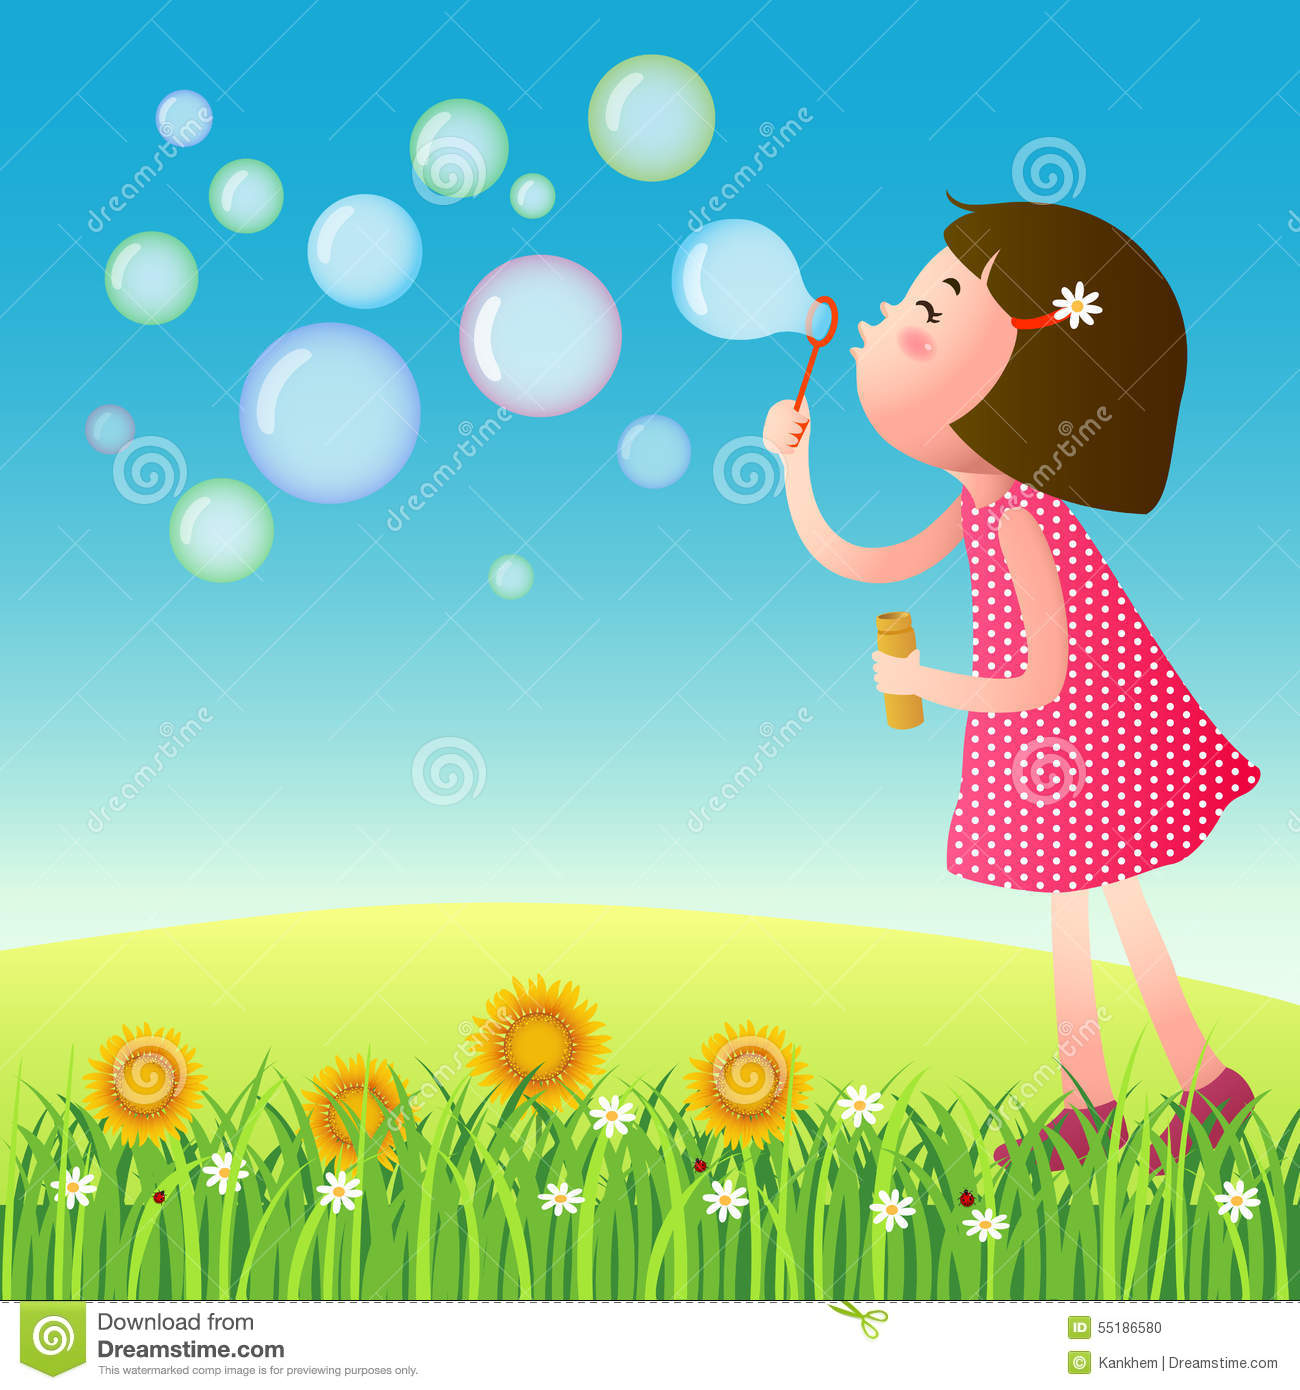 Cute Girl Blowing Bubbles On The Lawn Stock Vector ...